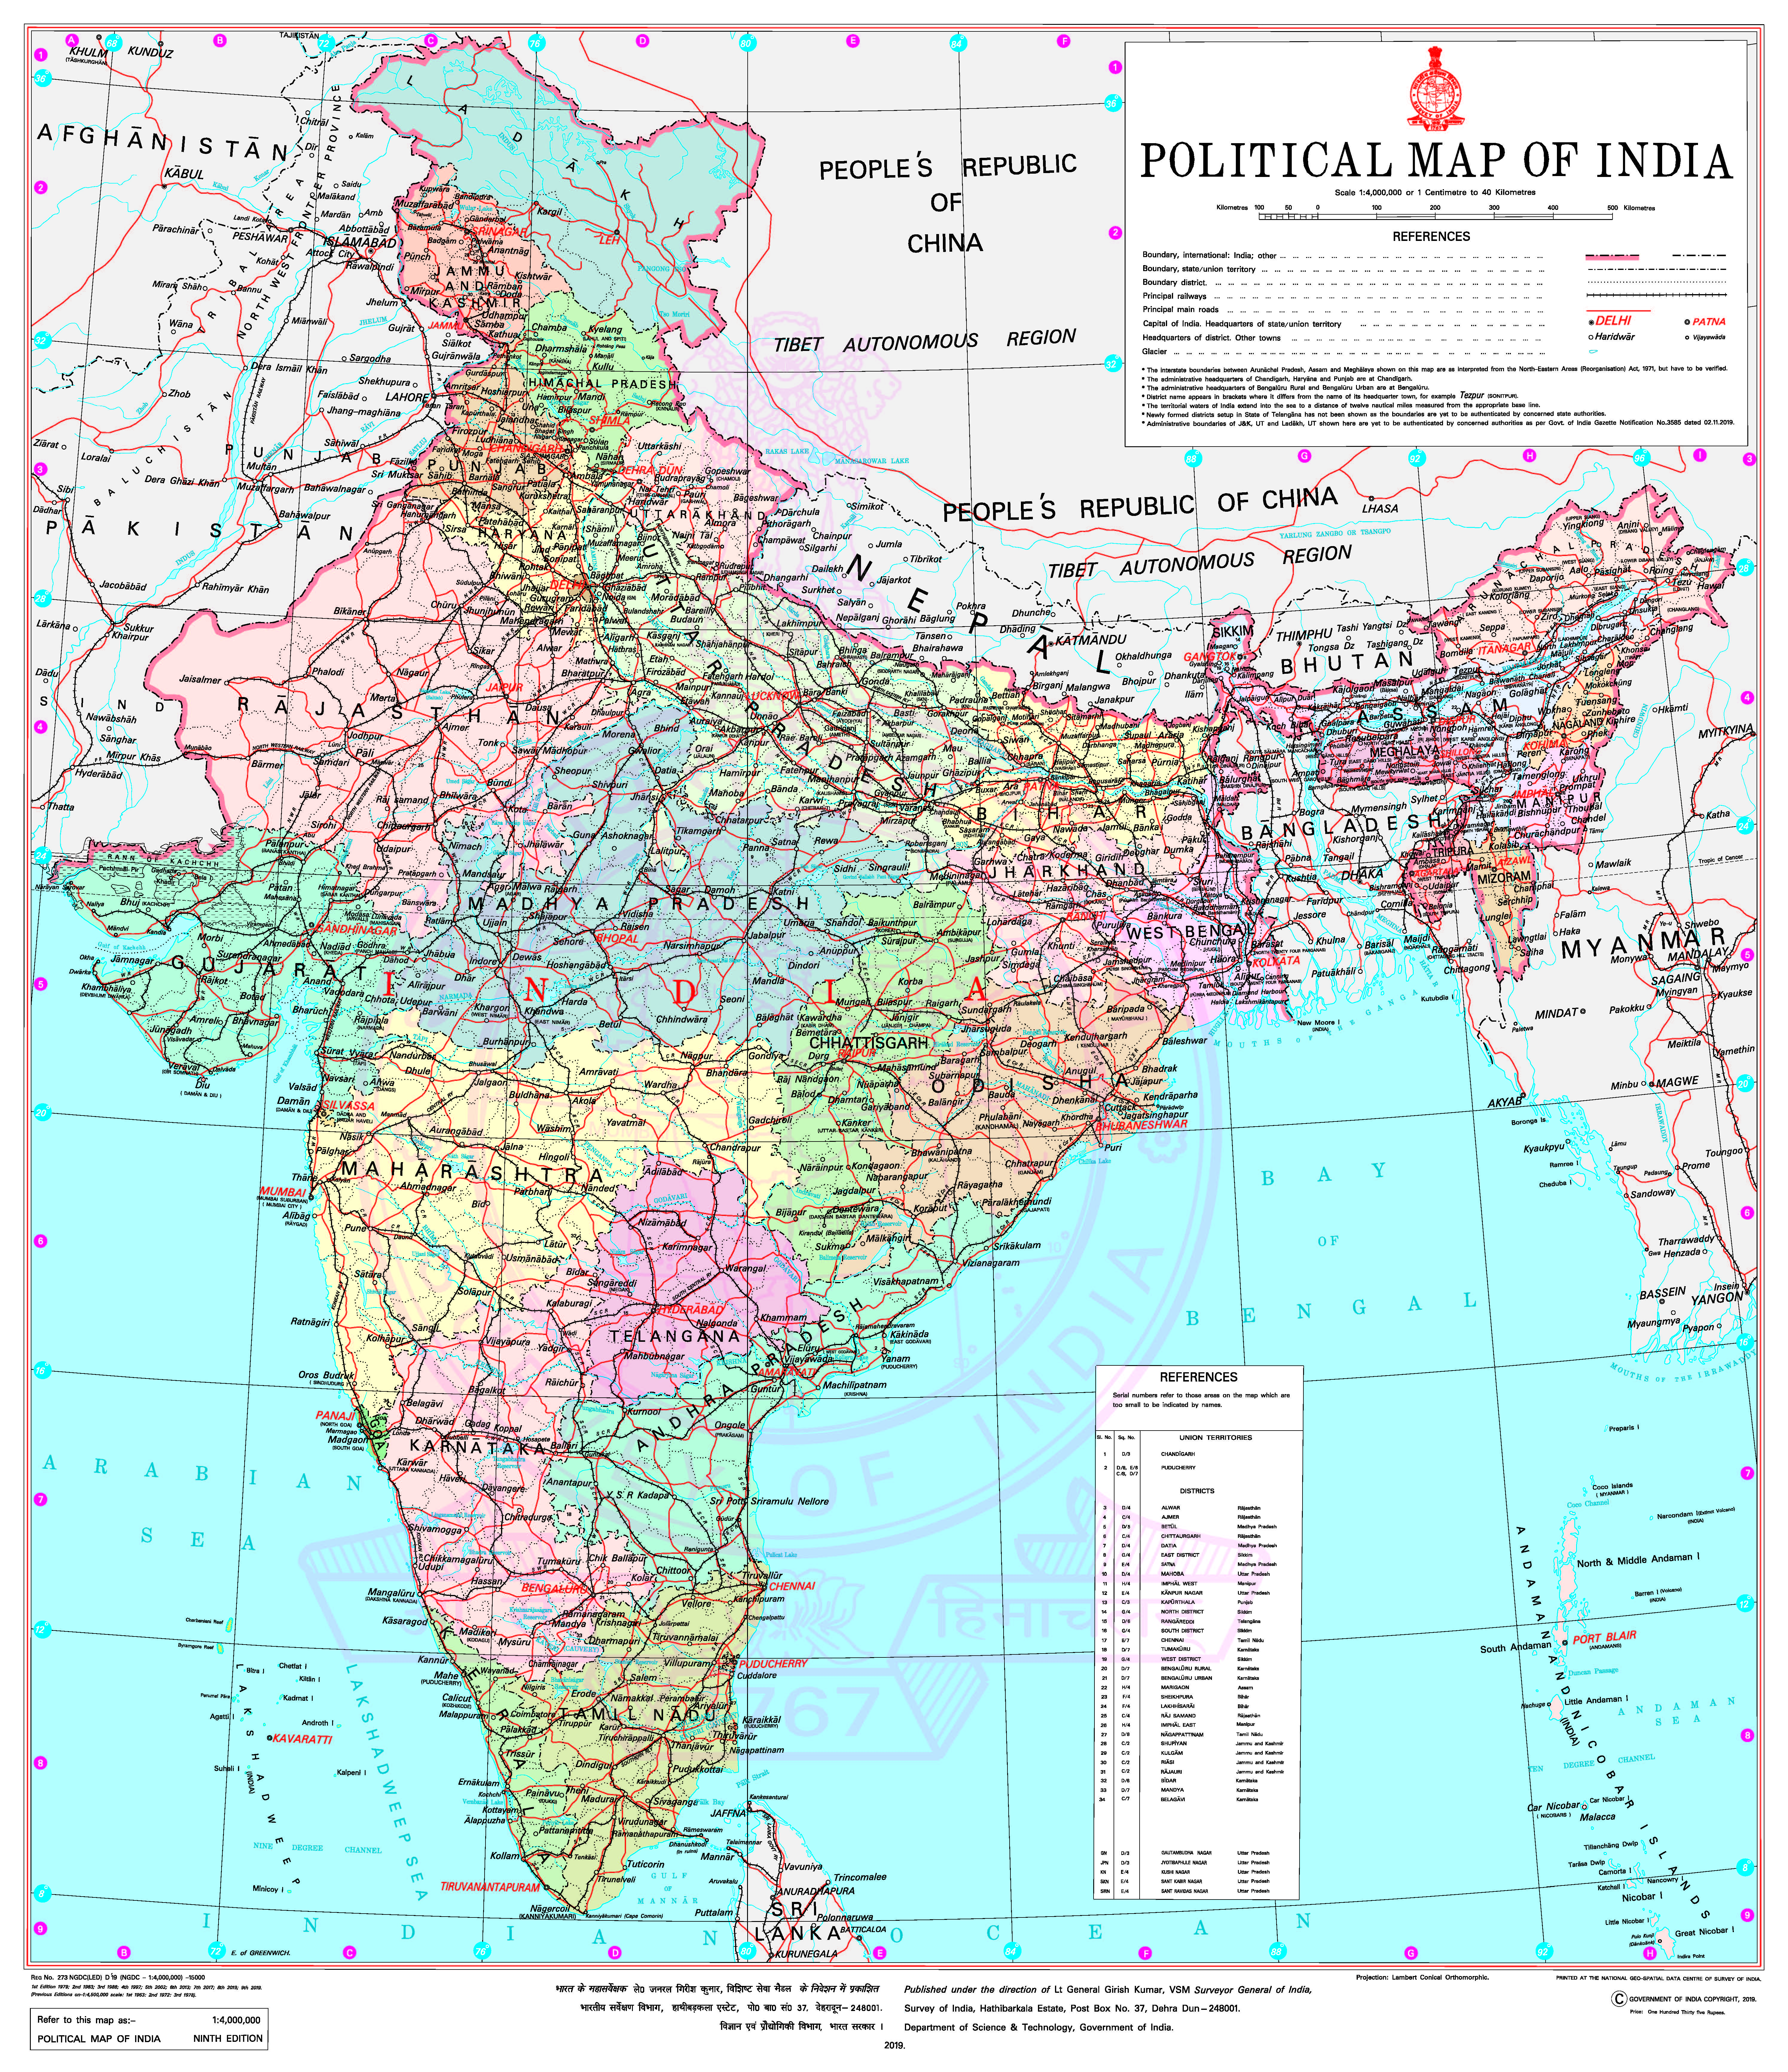 Political Map of India: Survey of India